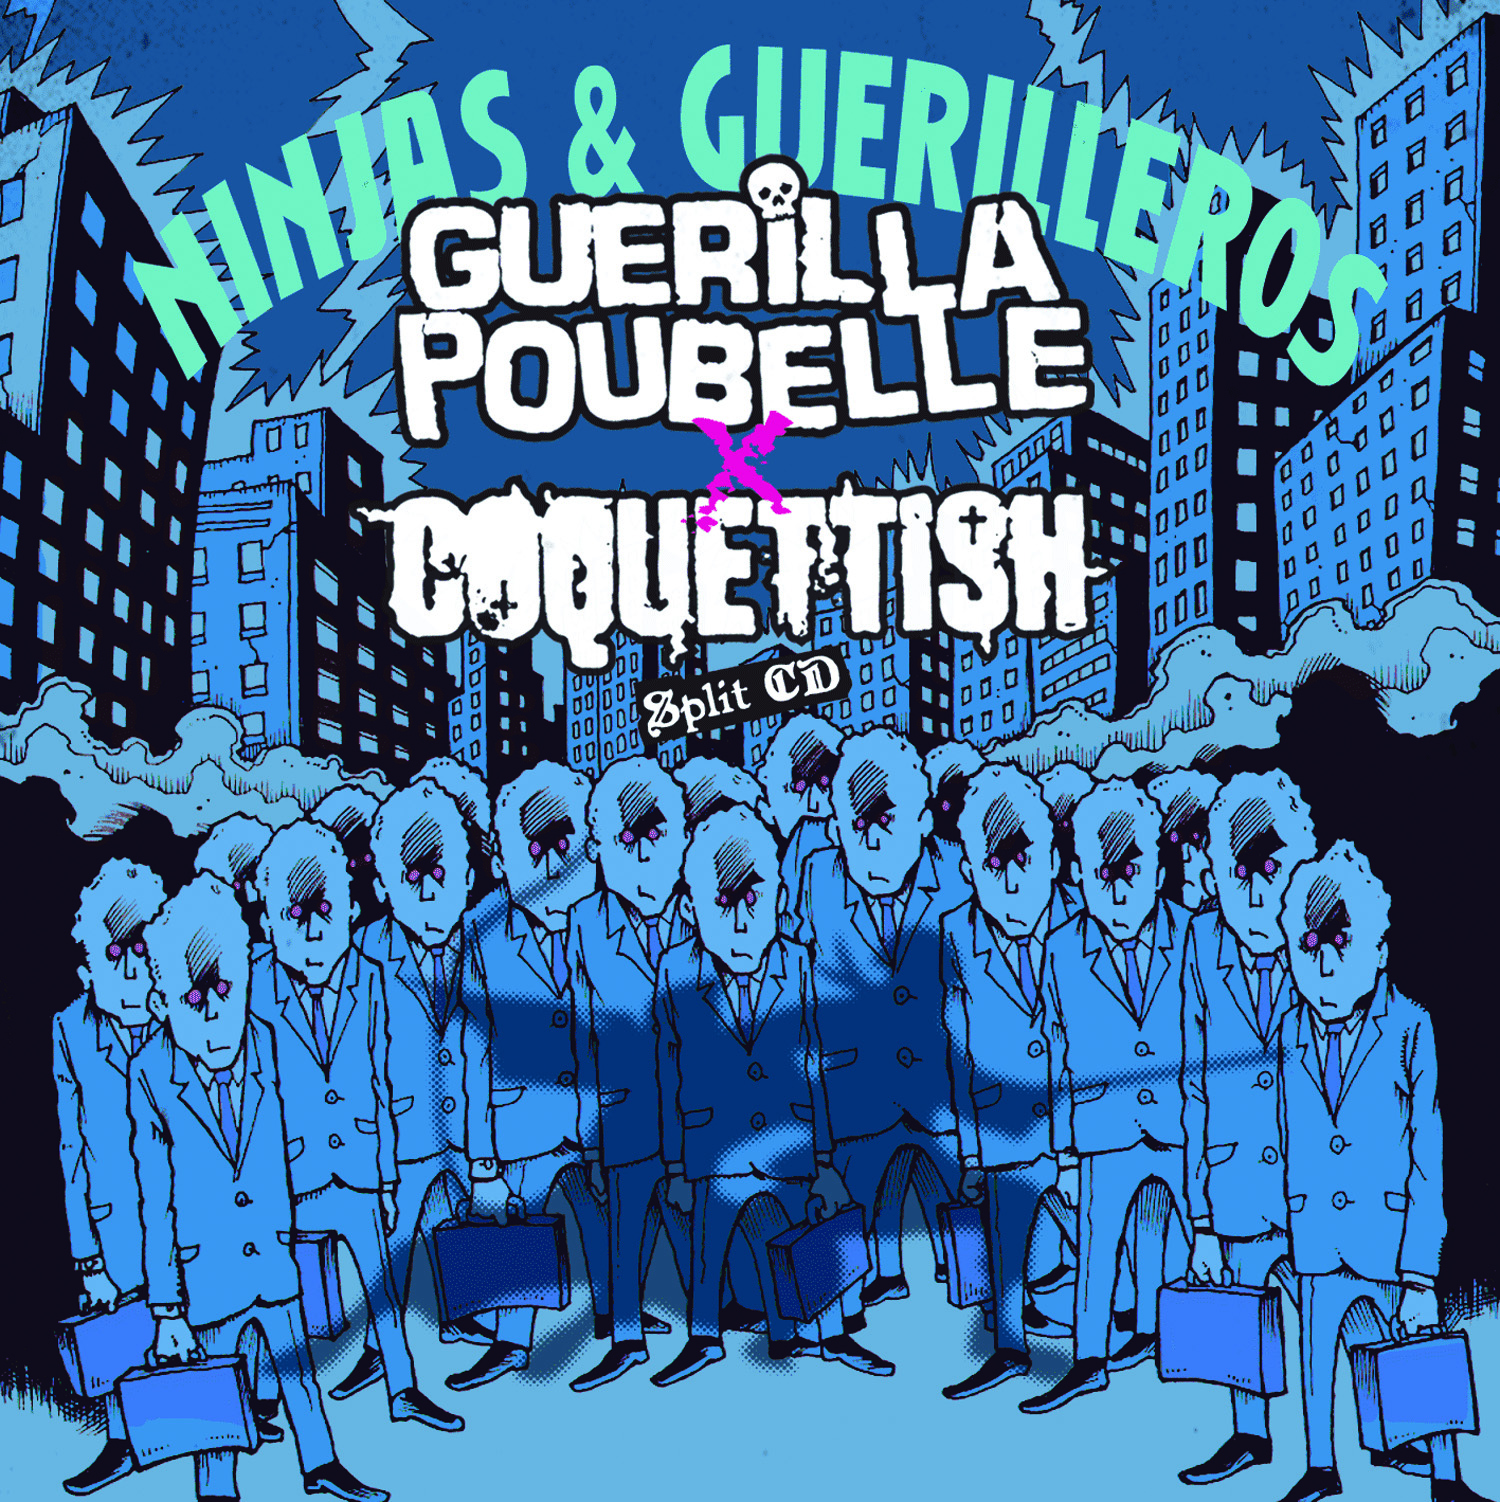 Guerilla Poubelle + Coquettish - split CD